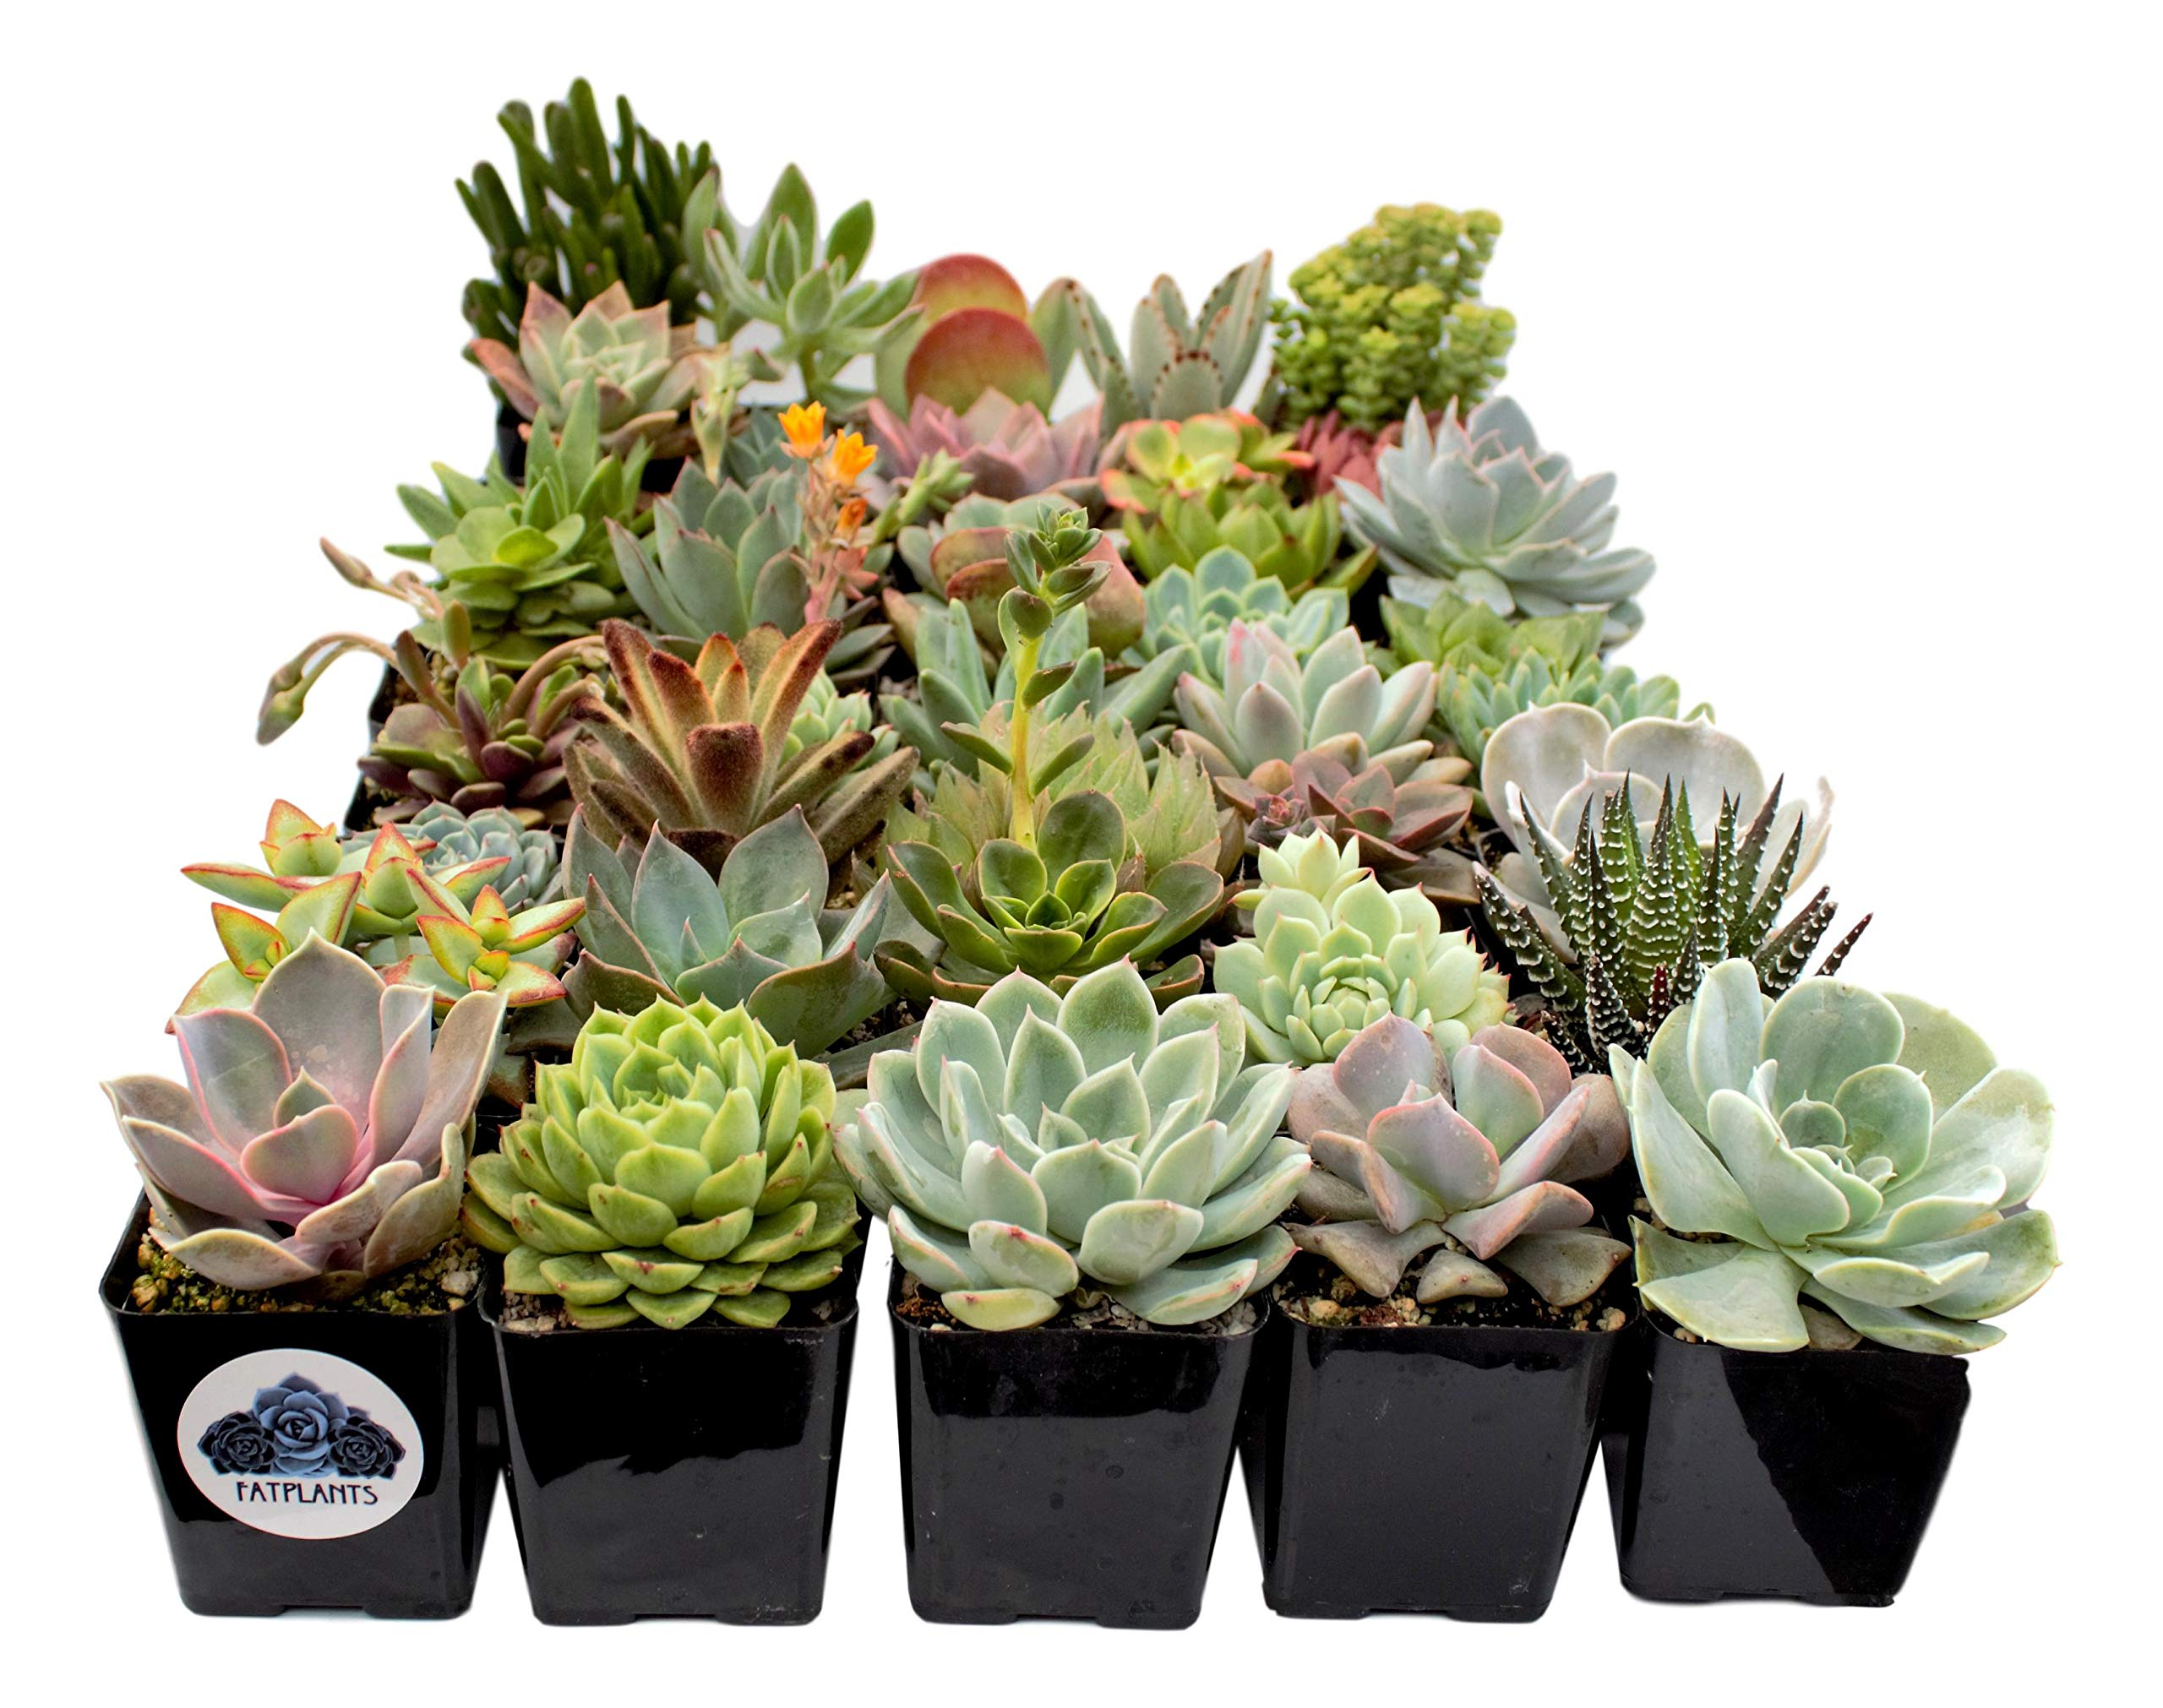 Fat Plants San Diego Premium Succulent Plant Variety Package. Live Indoor Succulents Rooted in Soil in a Plastic Growers Pot (30) by Fat Plants San Diego